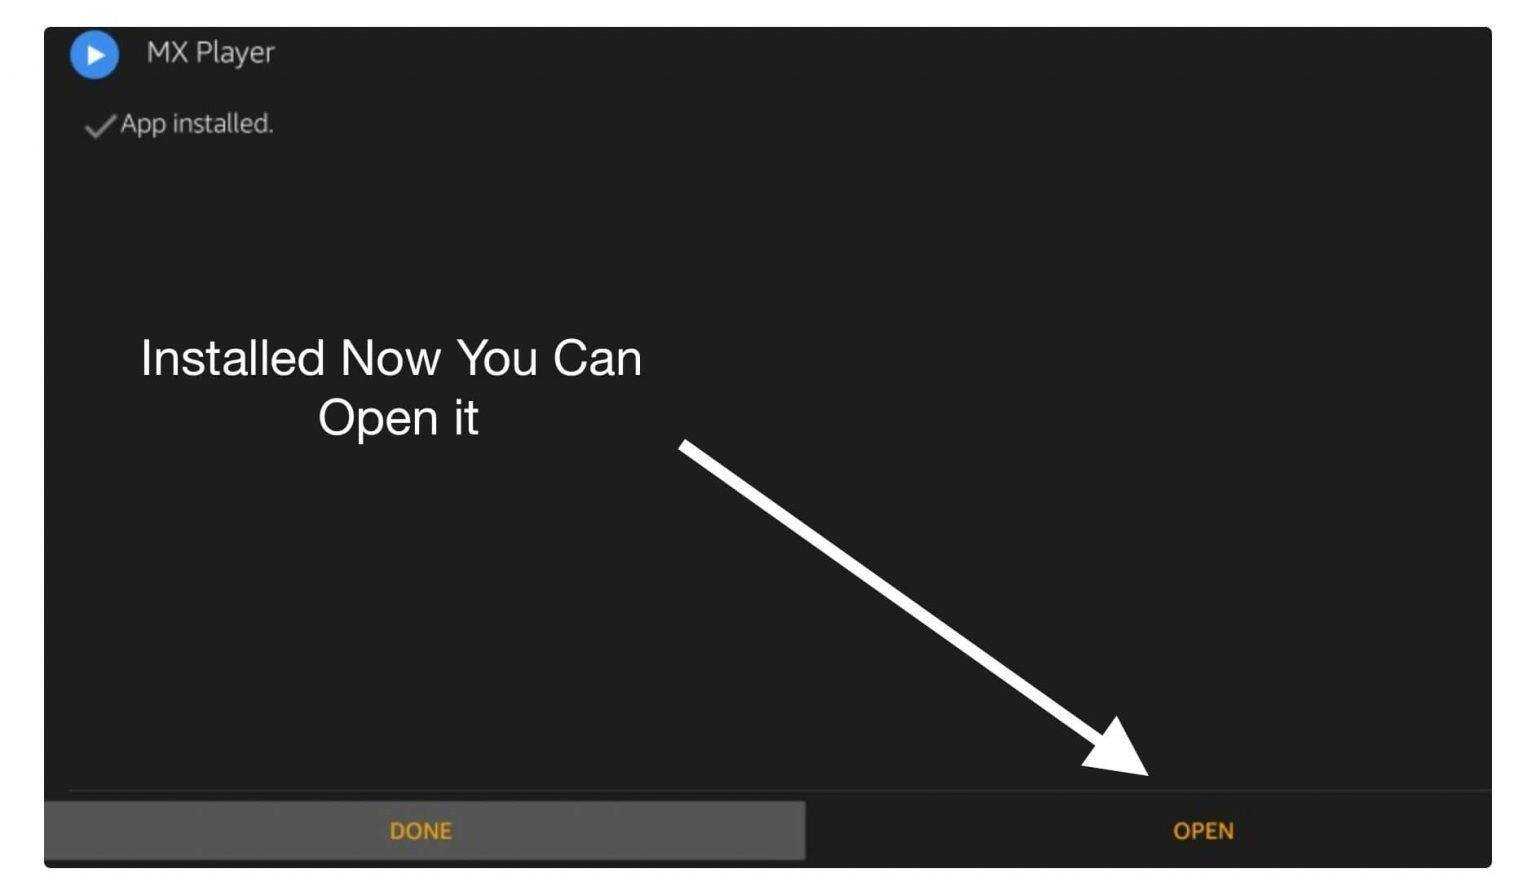 After installing, click open.